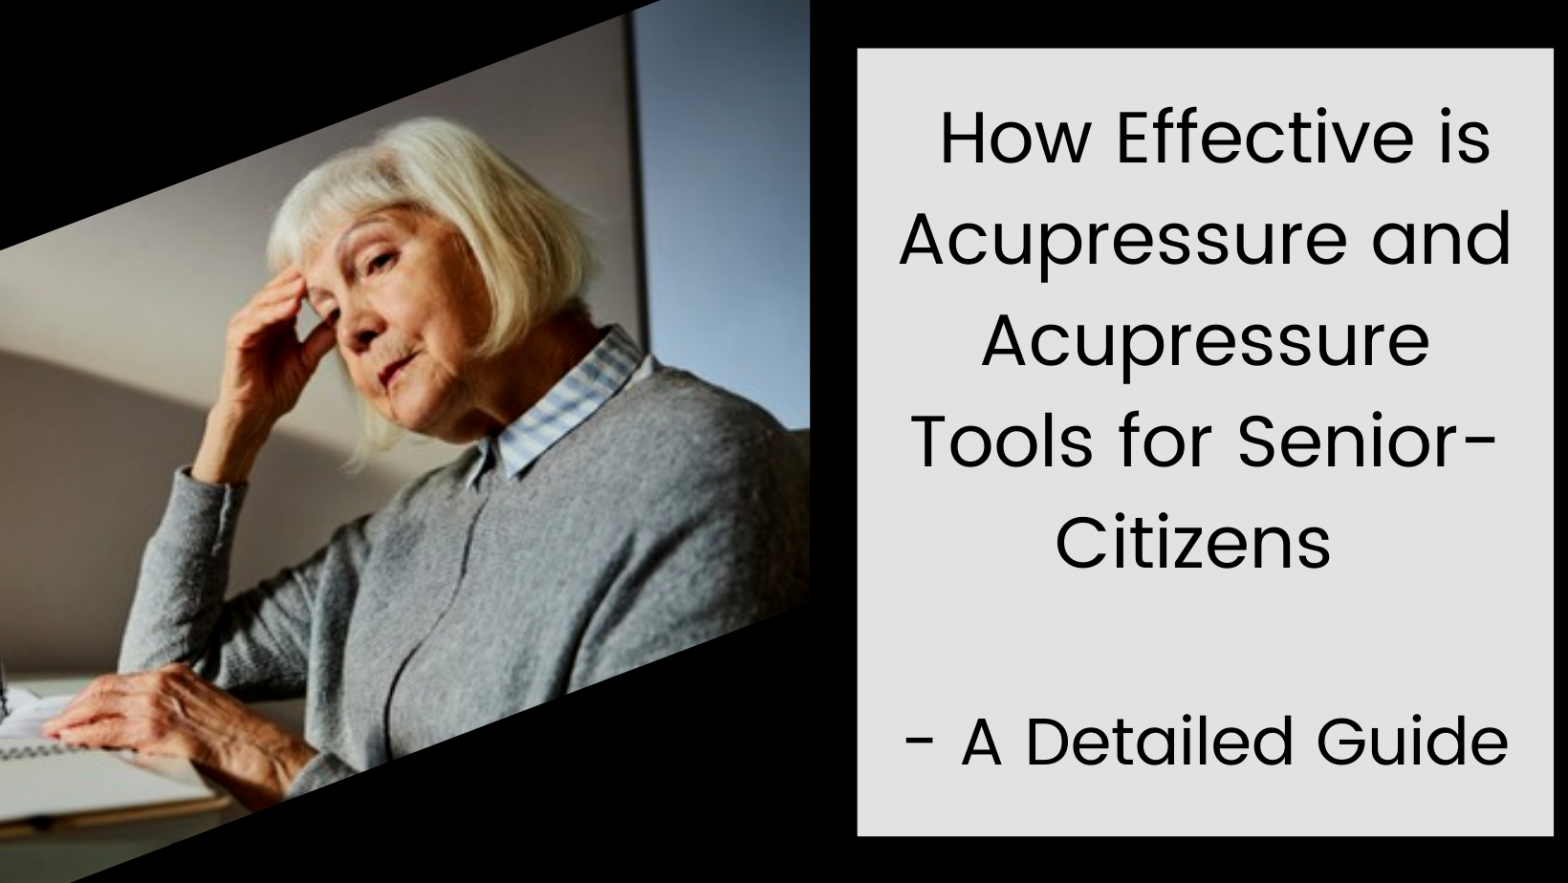 Best Detailed Guide of Acupressure Tools for Senior-Citizens